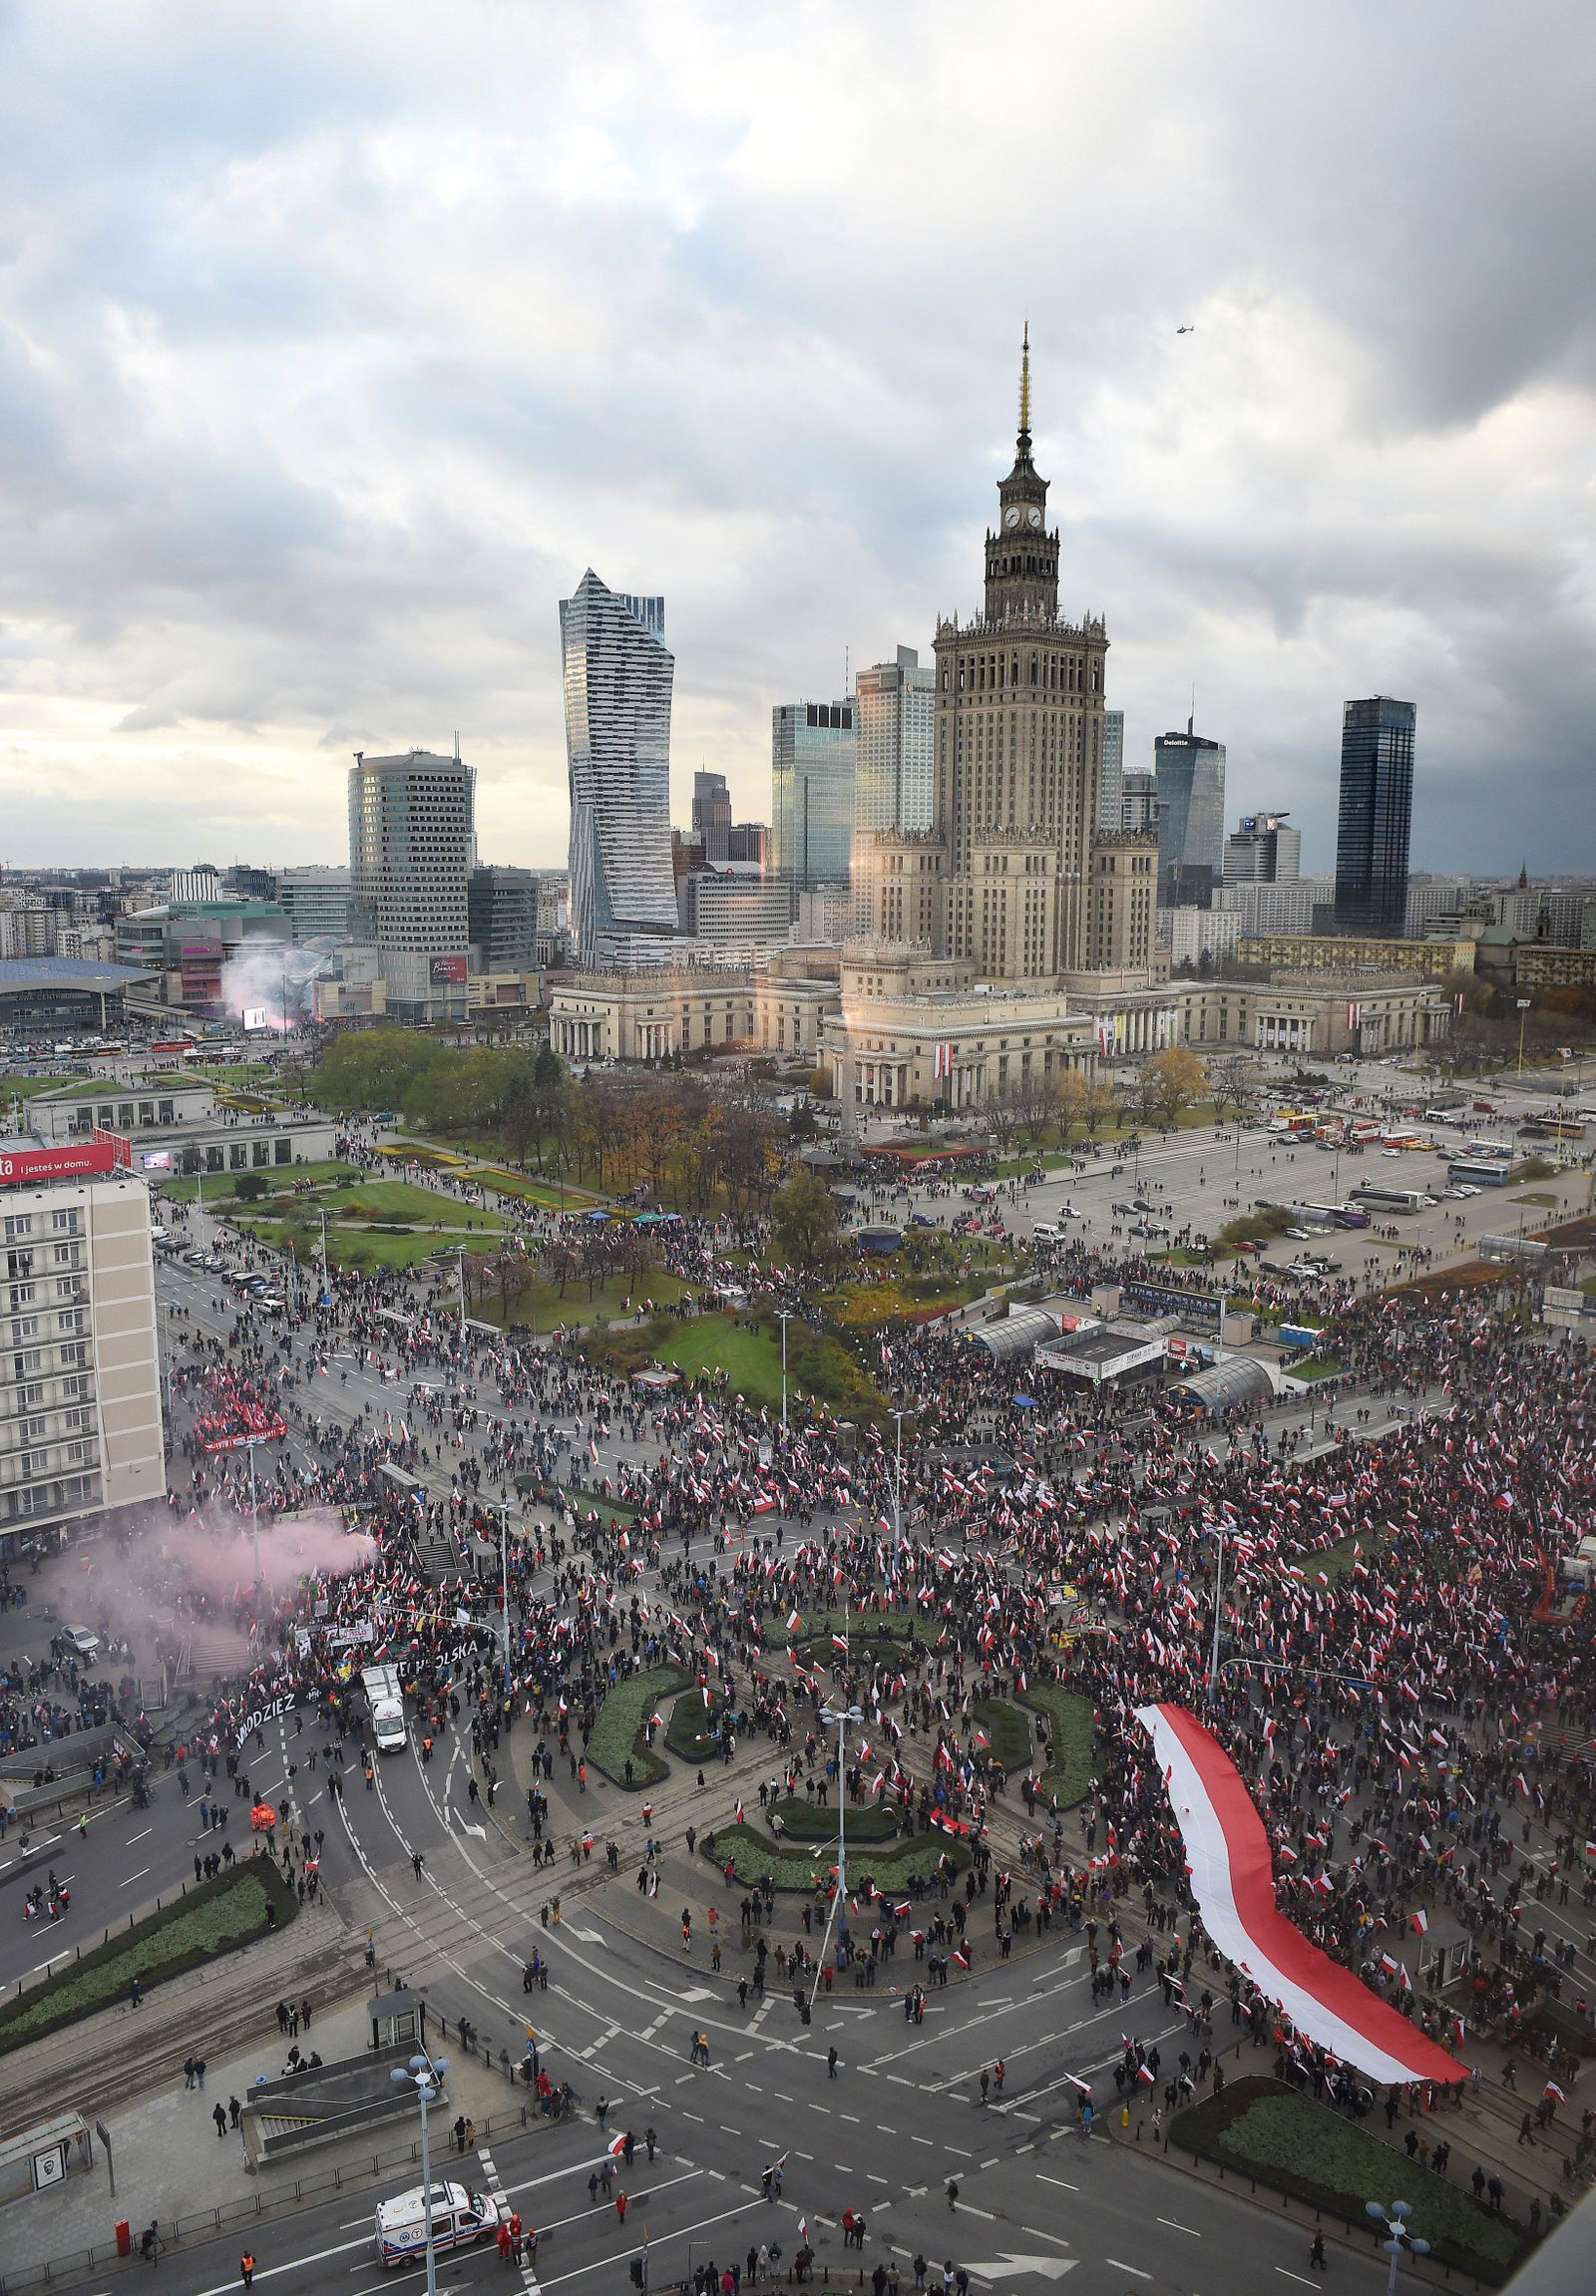 March of Independence in Warsaw, Poland - 11 Nov 2017